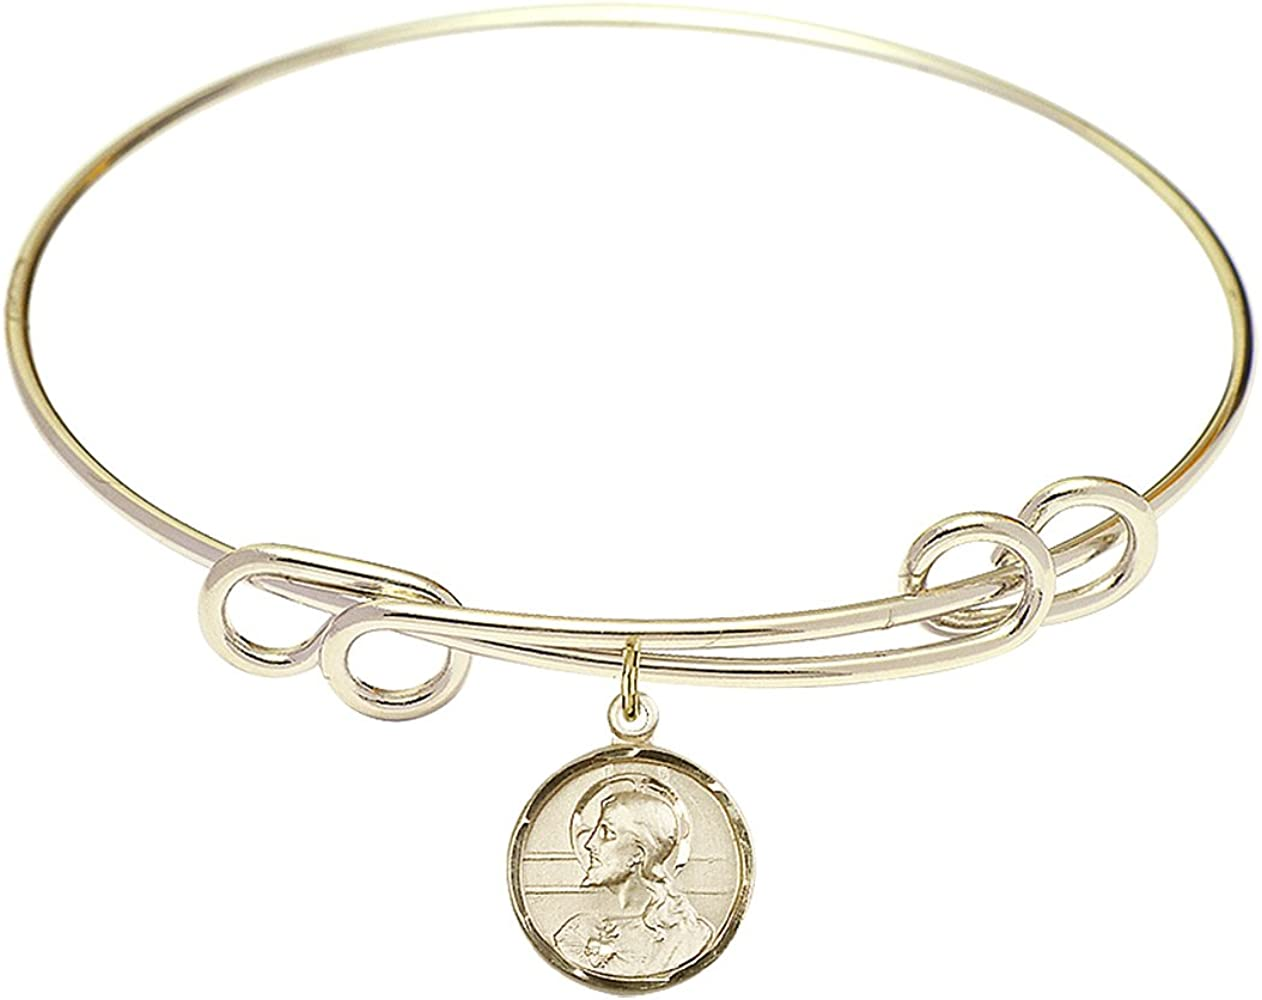 DiamondJewelryNY Double Loop Bangle Bracelet Free Shipping Cheap Bargain Gift Cha Scapular a with Cheap mail order shopping